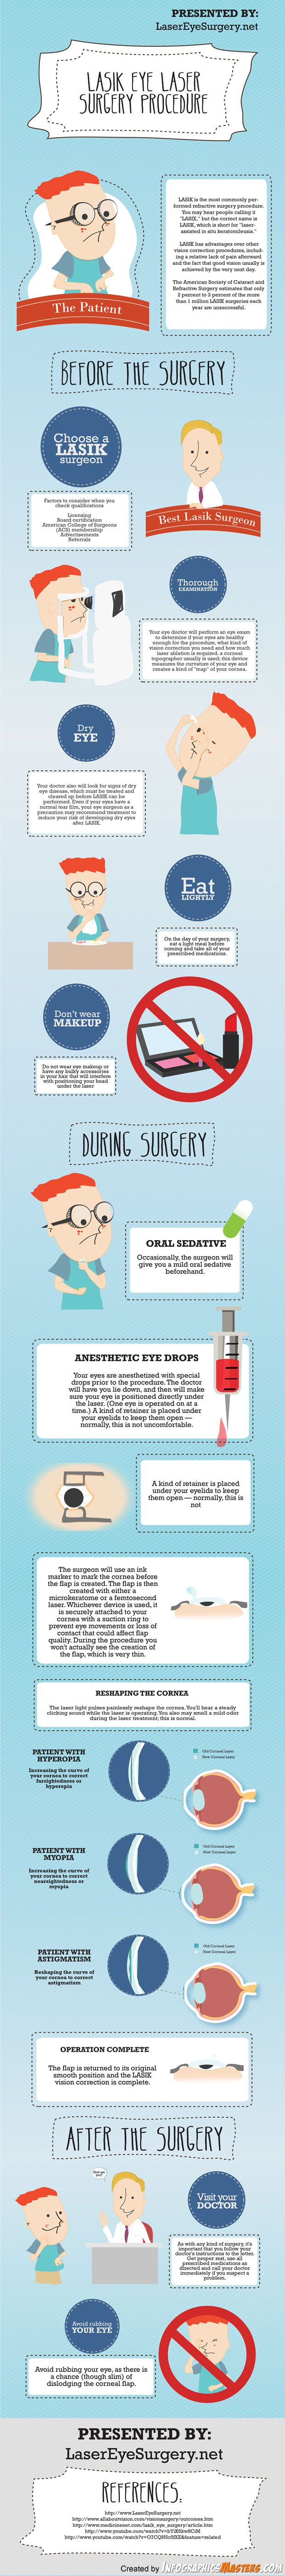 Lasik Eye Laser Surgery Procedure [Infographic] | Best Infographics